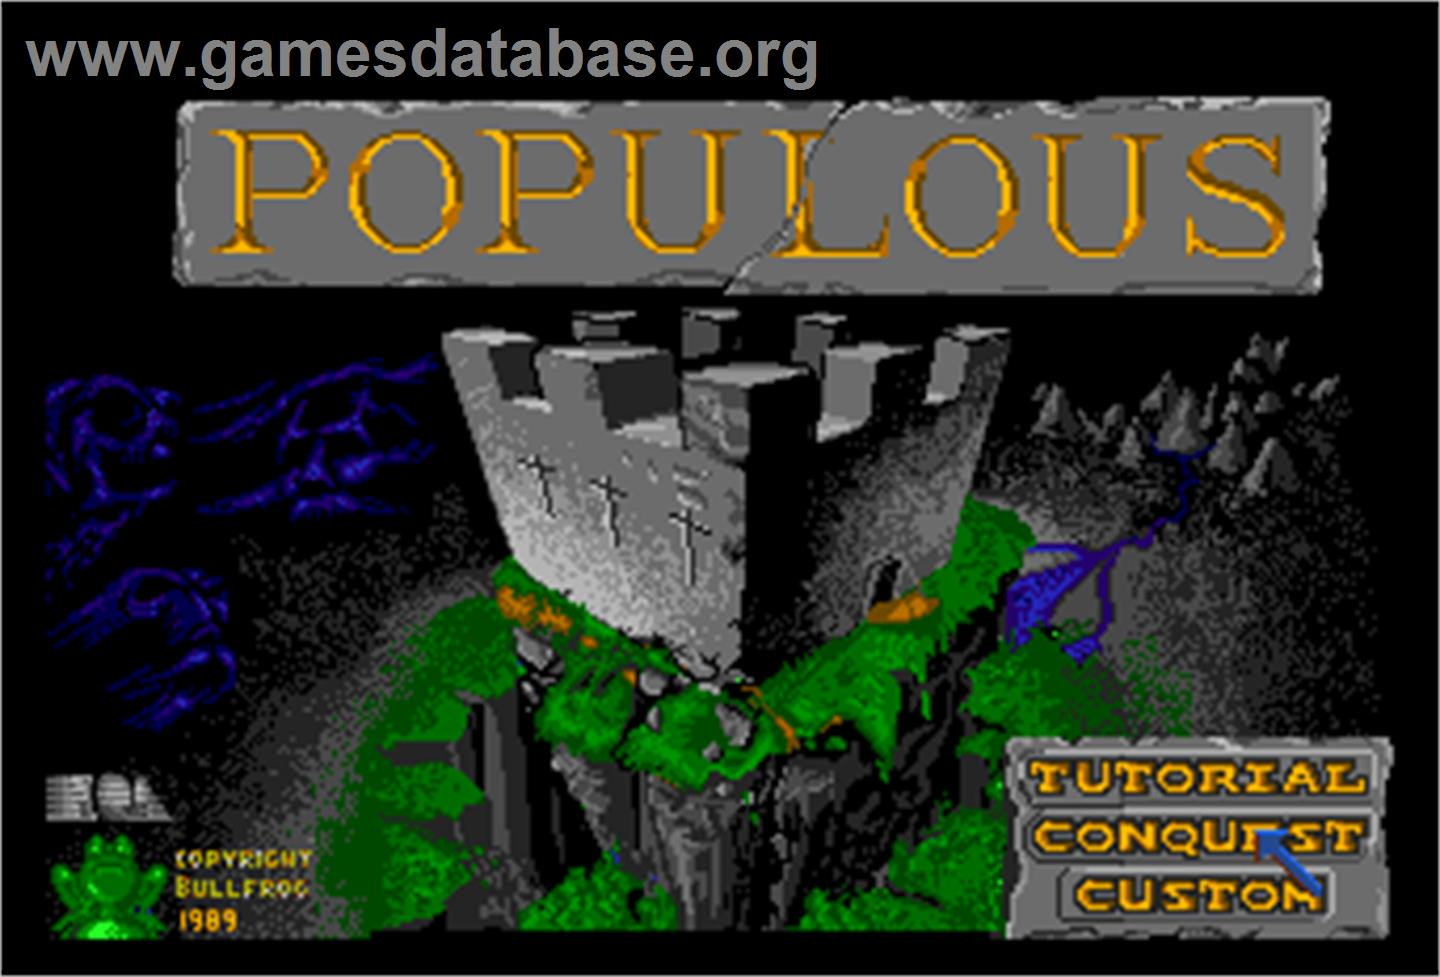 Populous - NEC PC Engine - Artwork - In Game